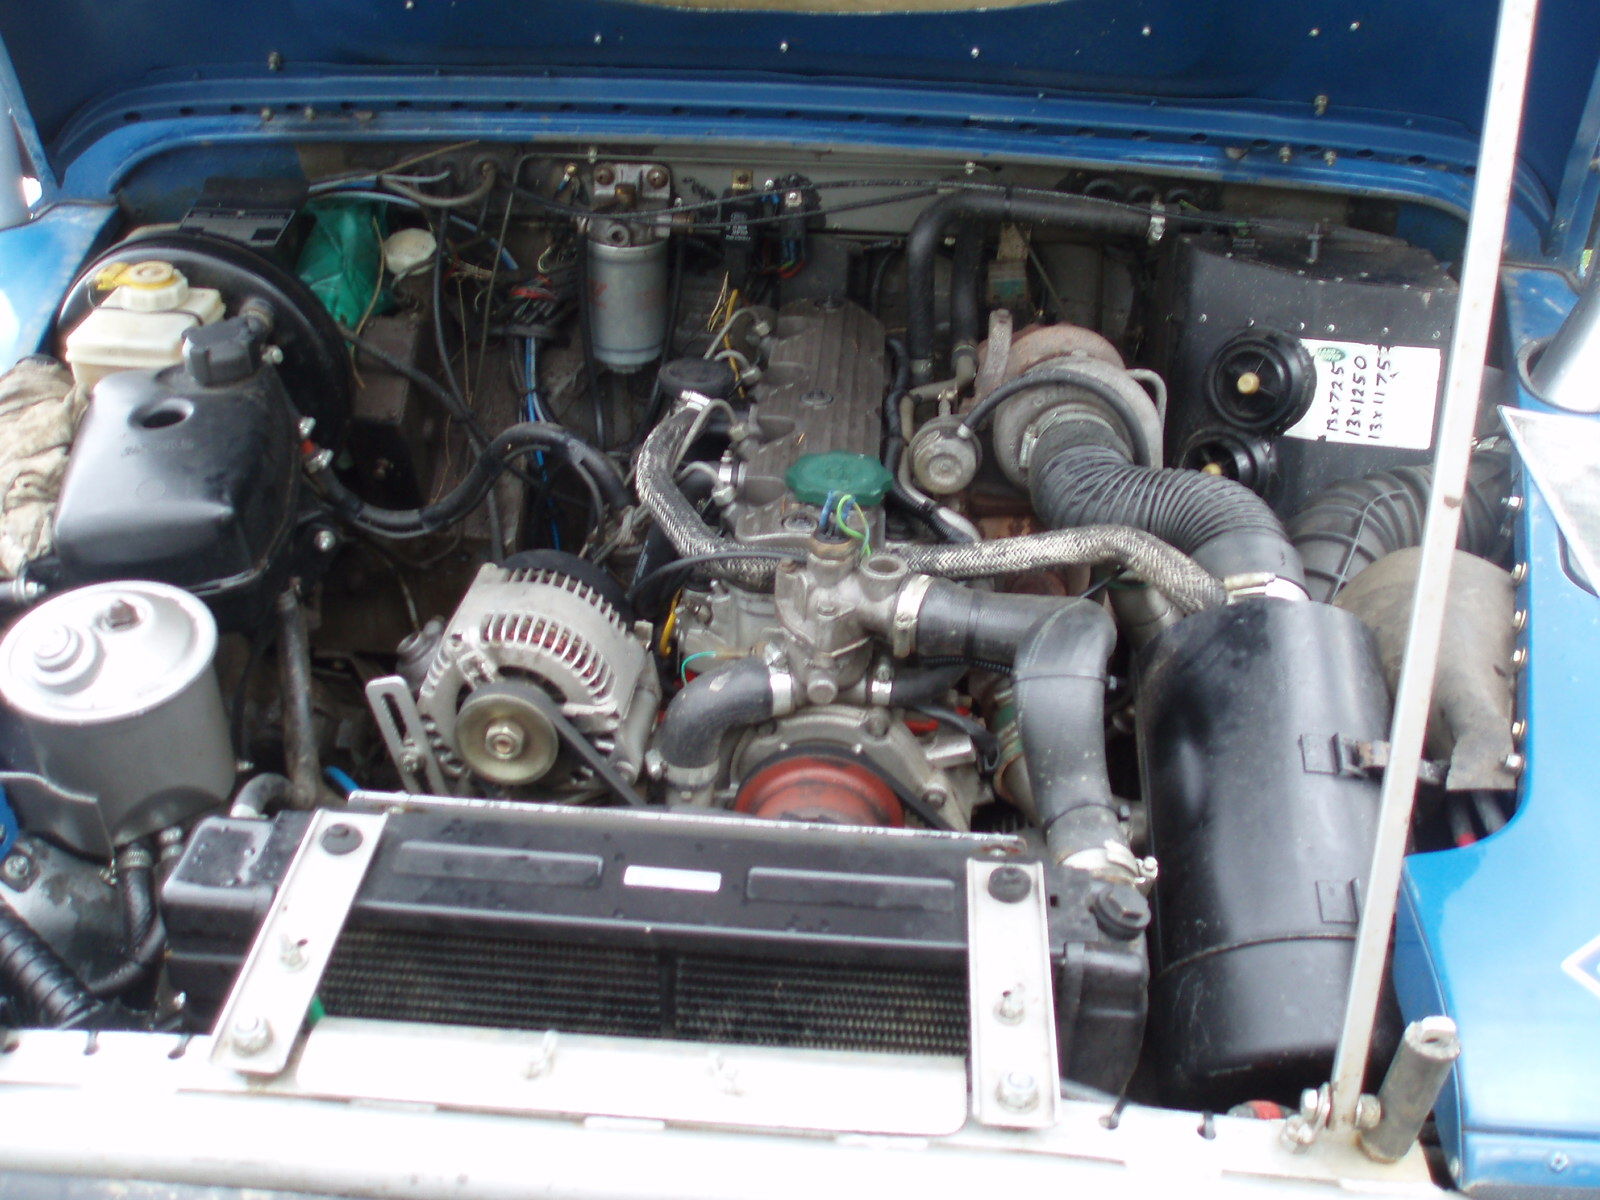 In Rotary Engine Ls1 Coil Wiring Diagram Fil Land Rover 200tdi Engine Jpg Wikipedia